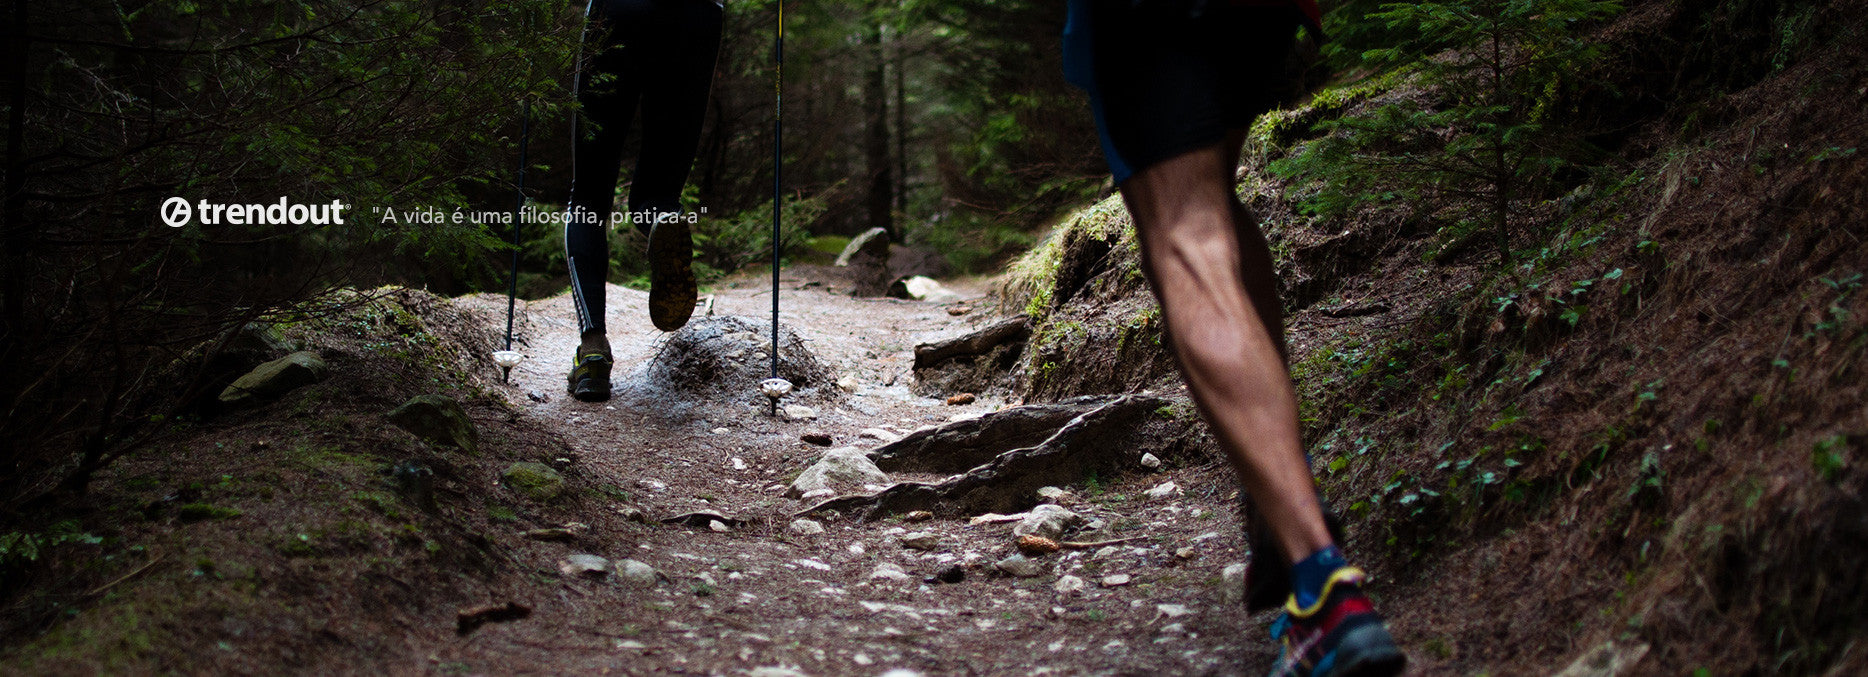 Running-Trail-running-workout-outdoor